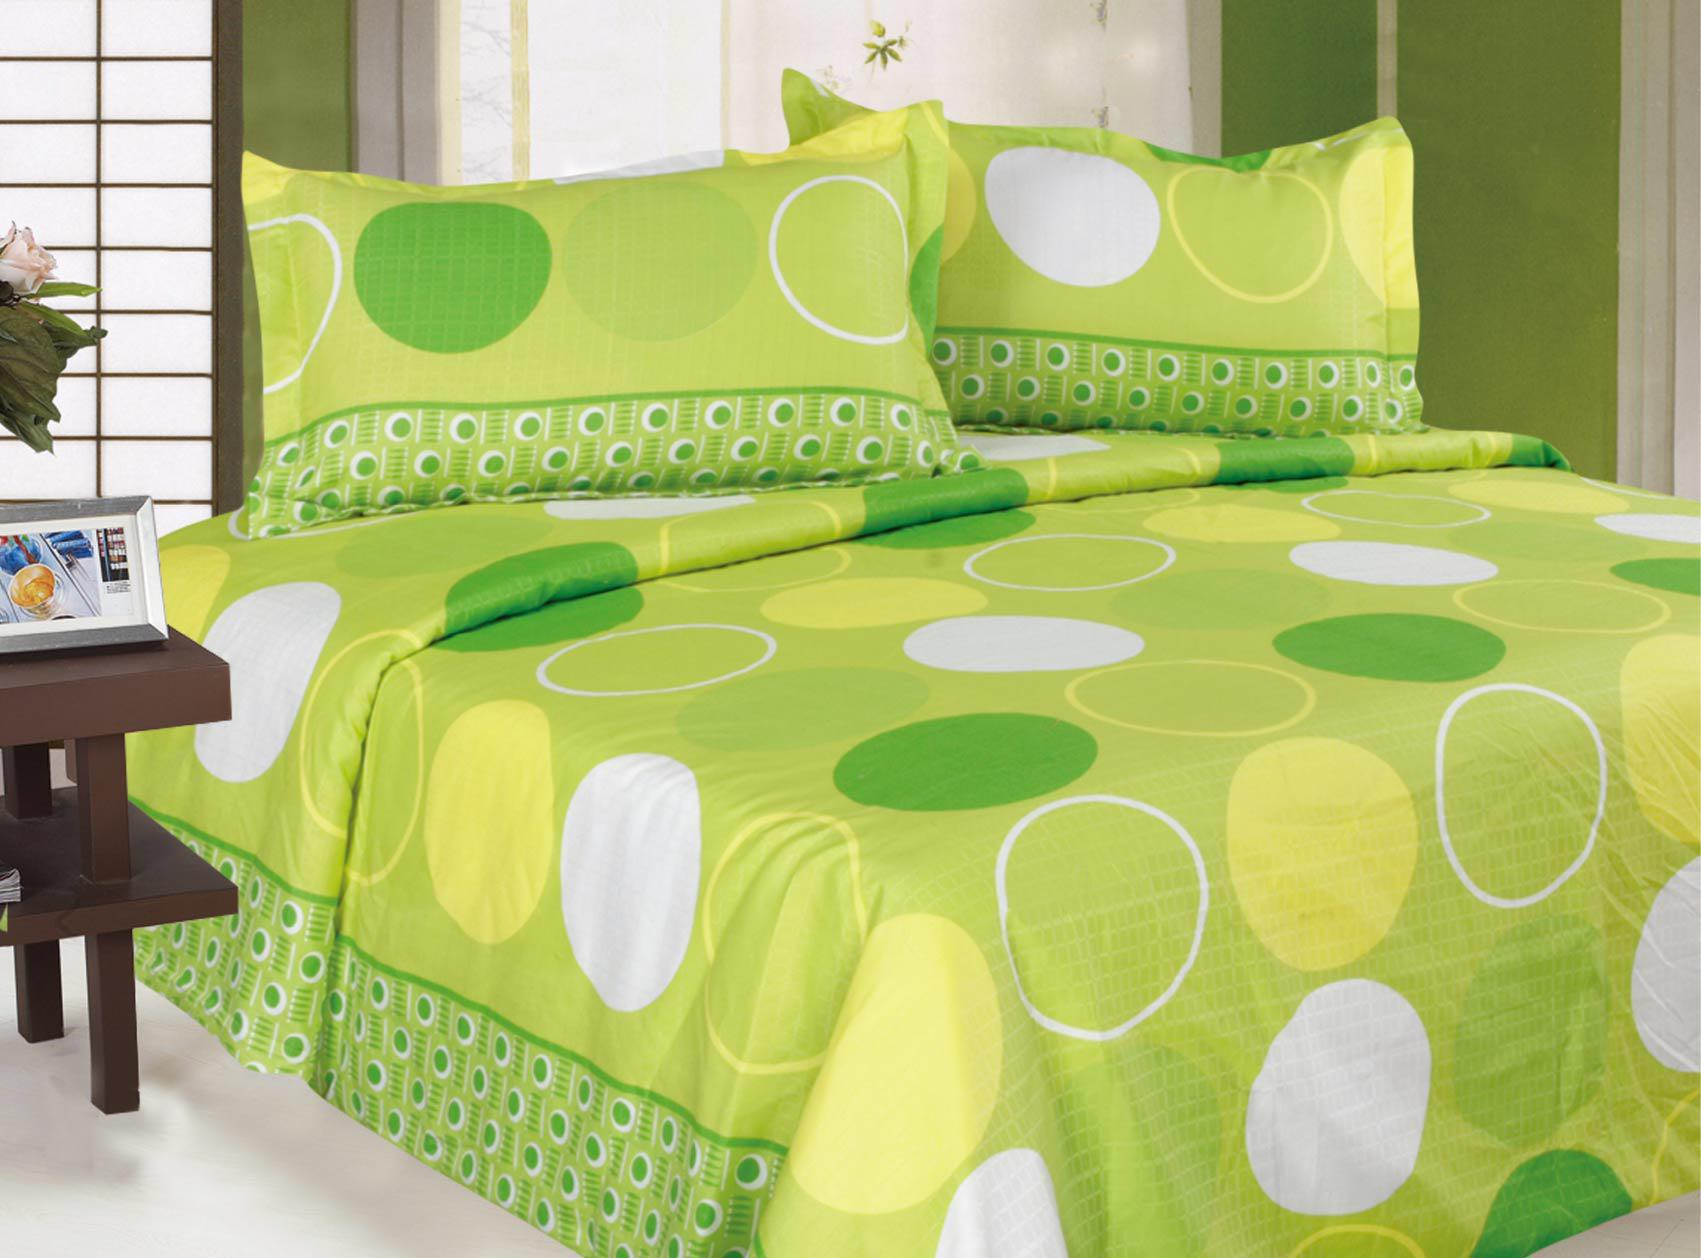 Price:25,000. Re: Learn How To Make Bedsheets, Pillowcases ...